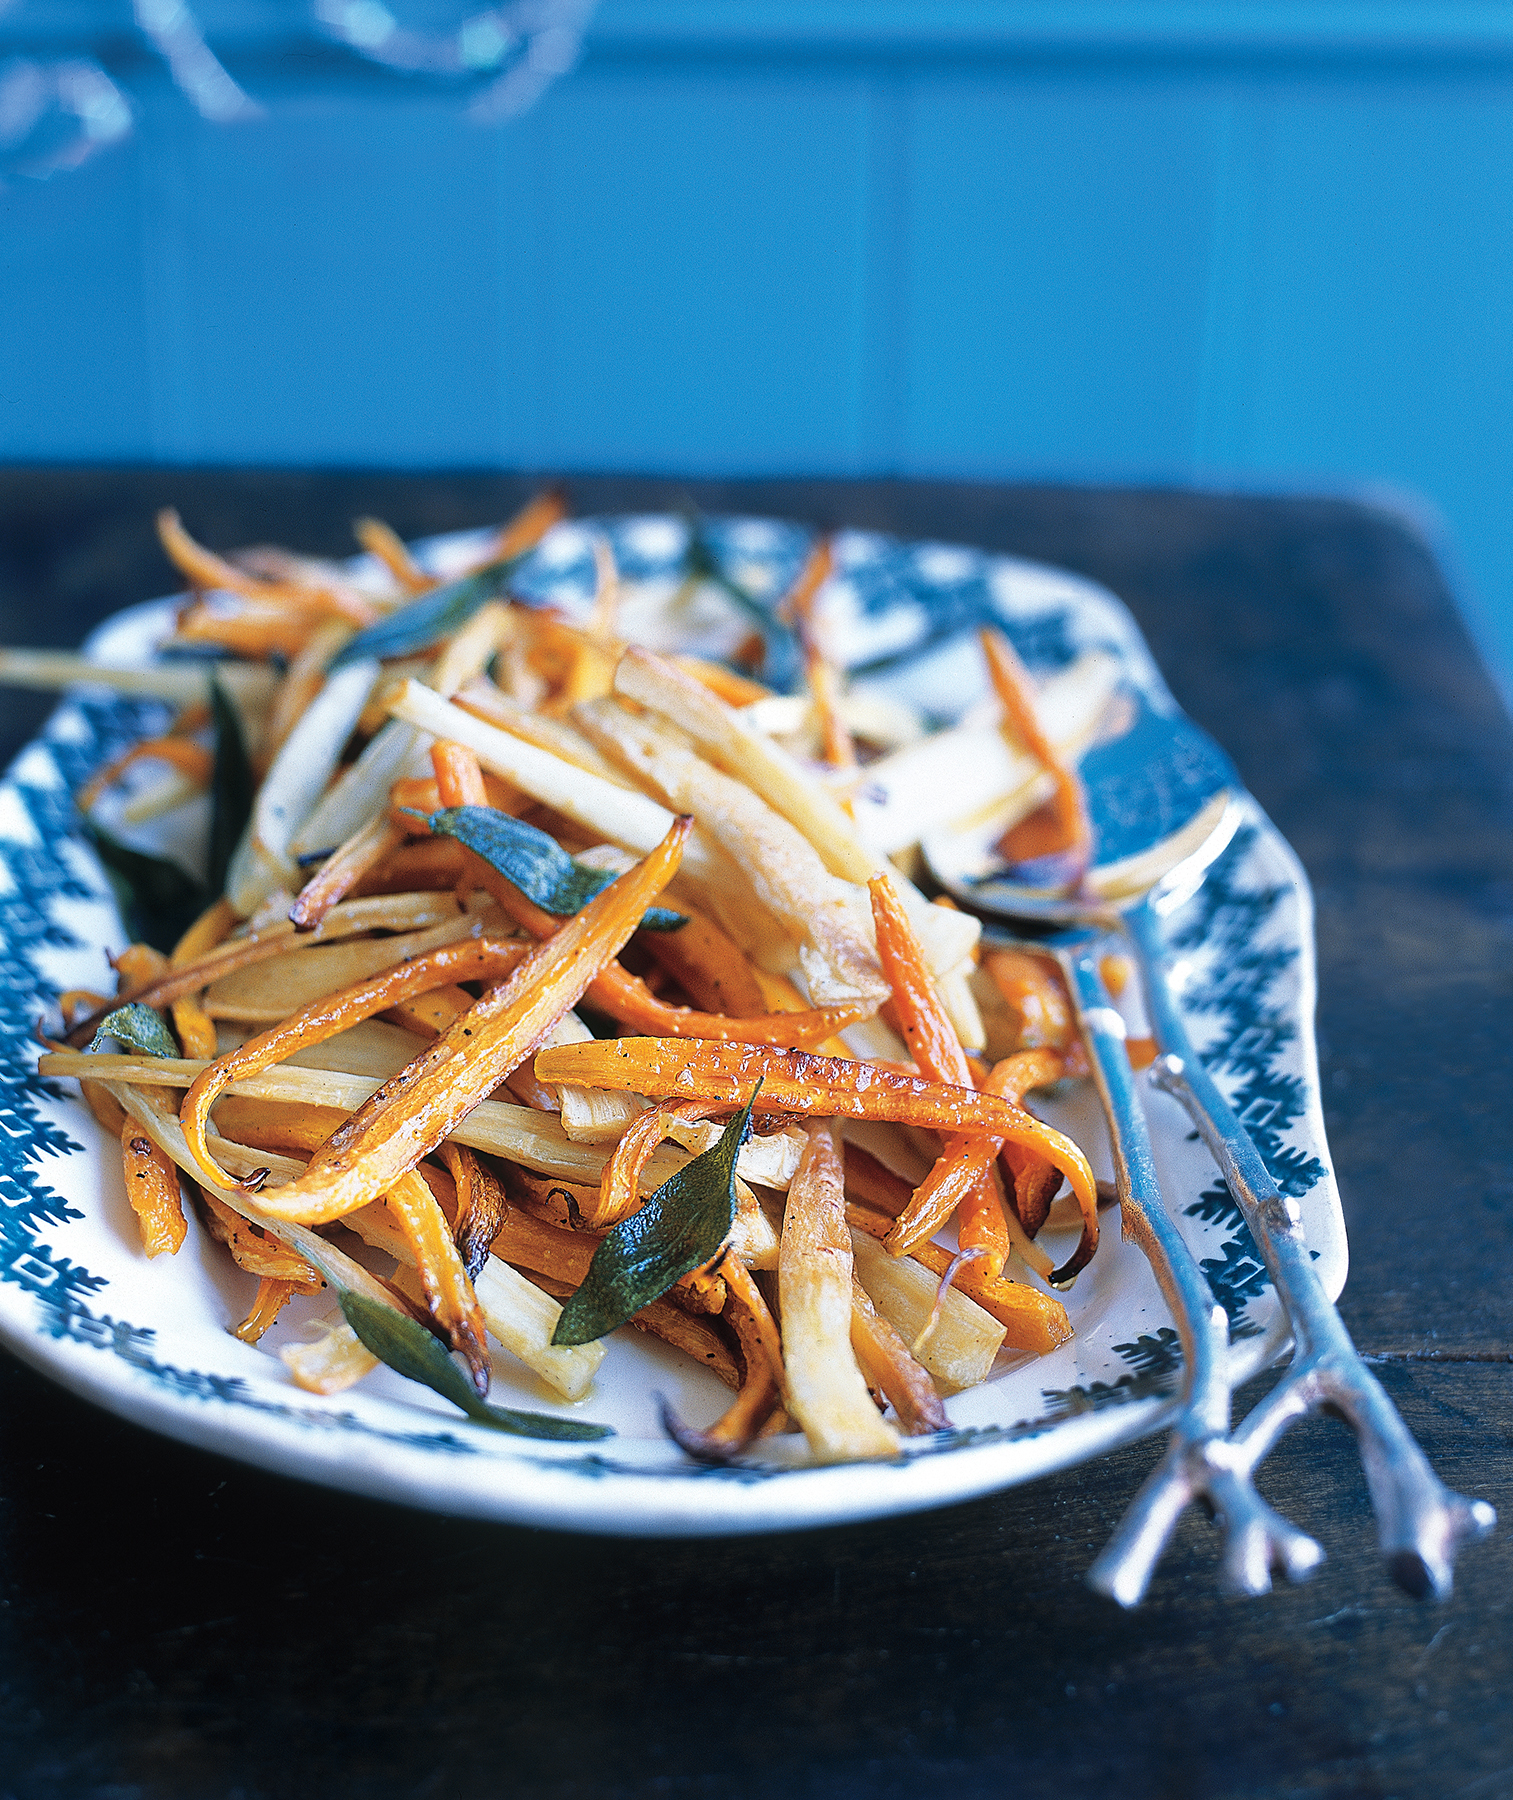 Roasted Parsnips and Carrots With Sage